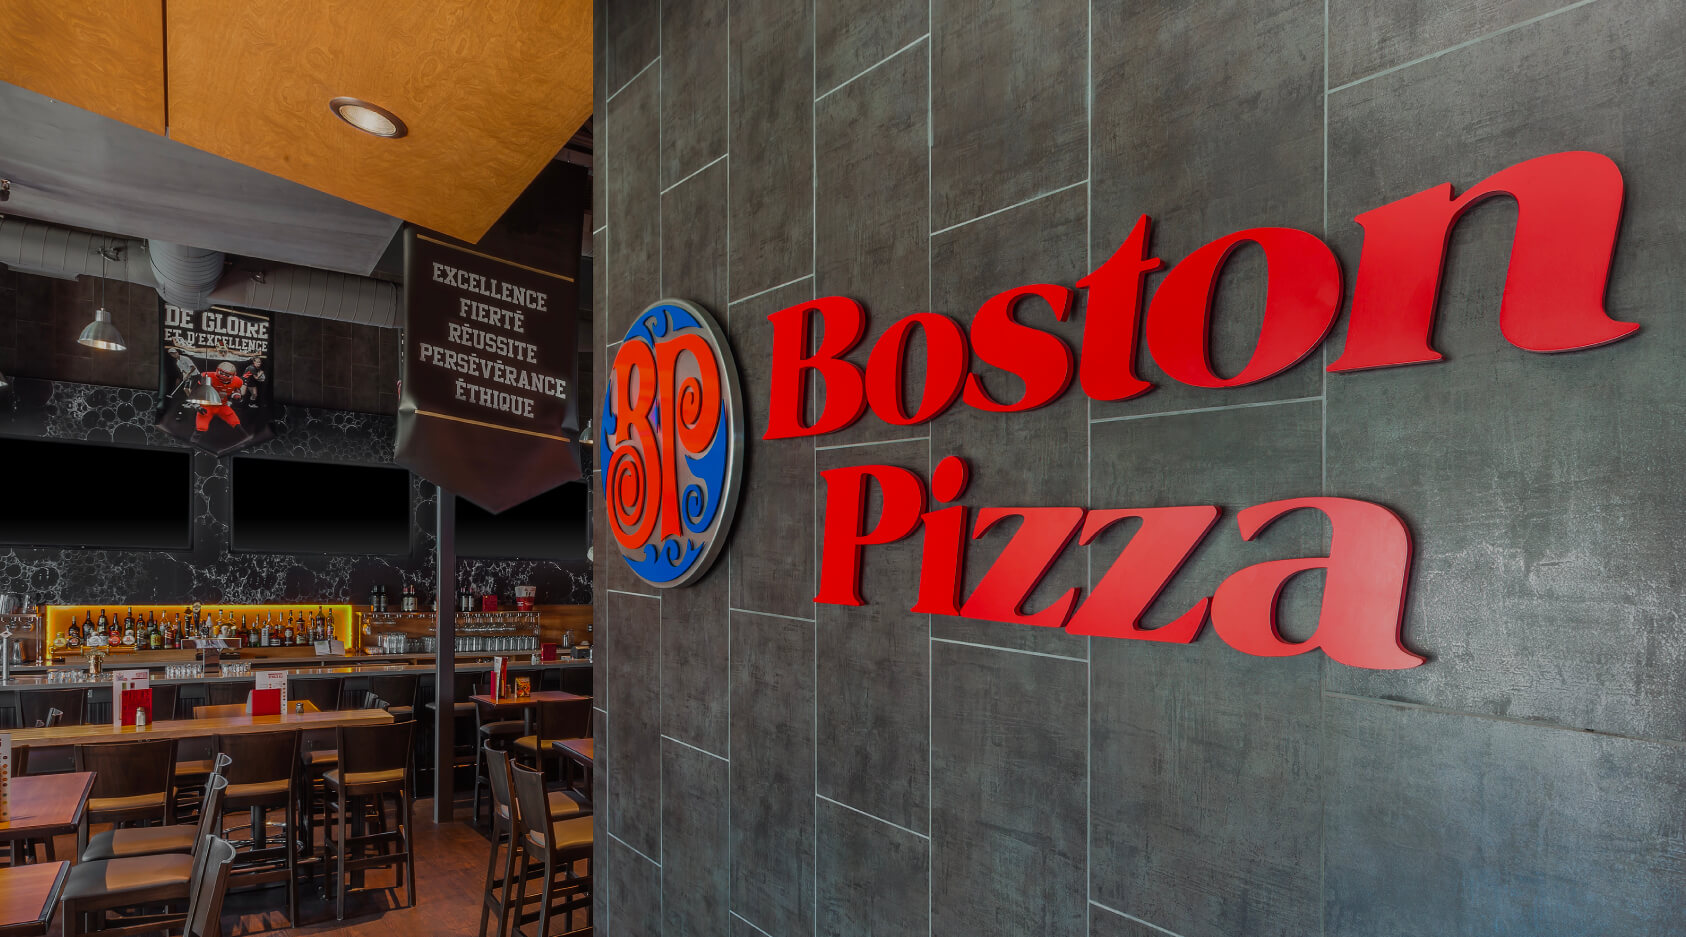 Restaurant Boston Pizza